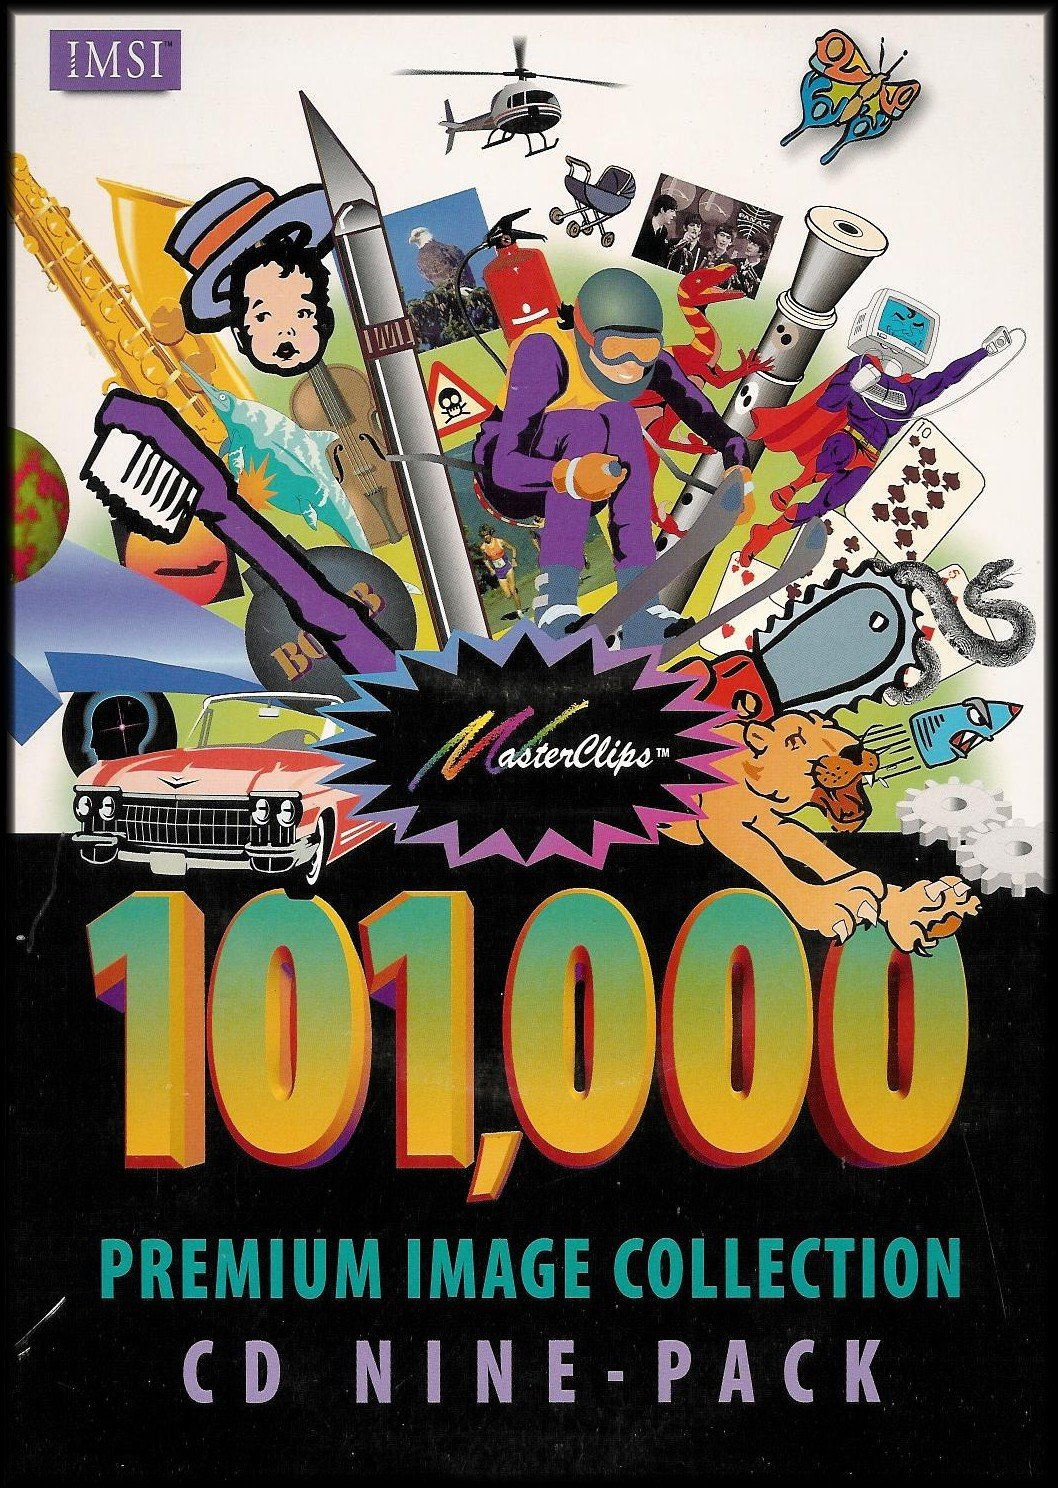 Masterclips 101,000 Premium Image Collection CD 9 Pack (Clip Art, True Type Fonts, Color Photos, Web Images, Sound Clips, Animation and Video Clips, and More!) by IMSI